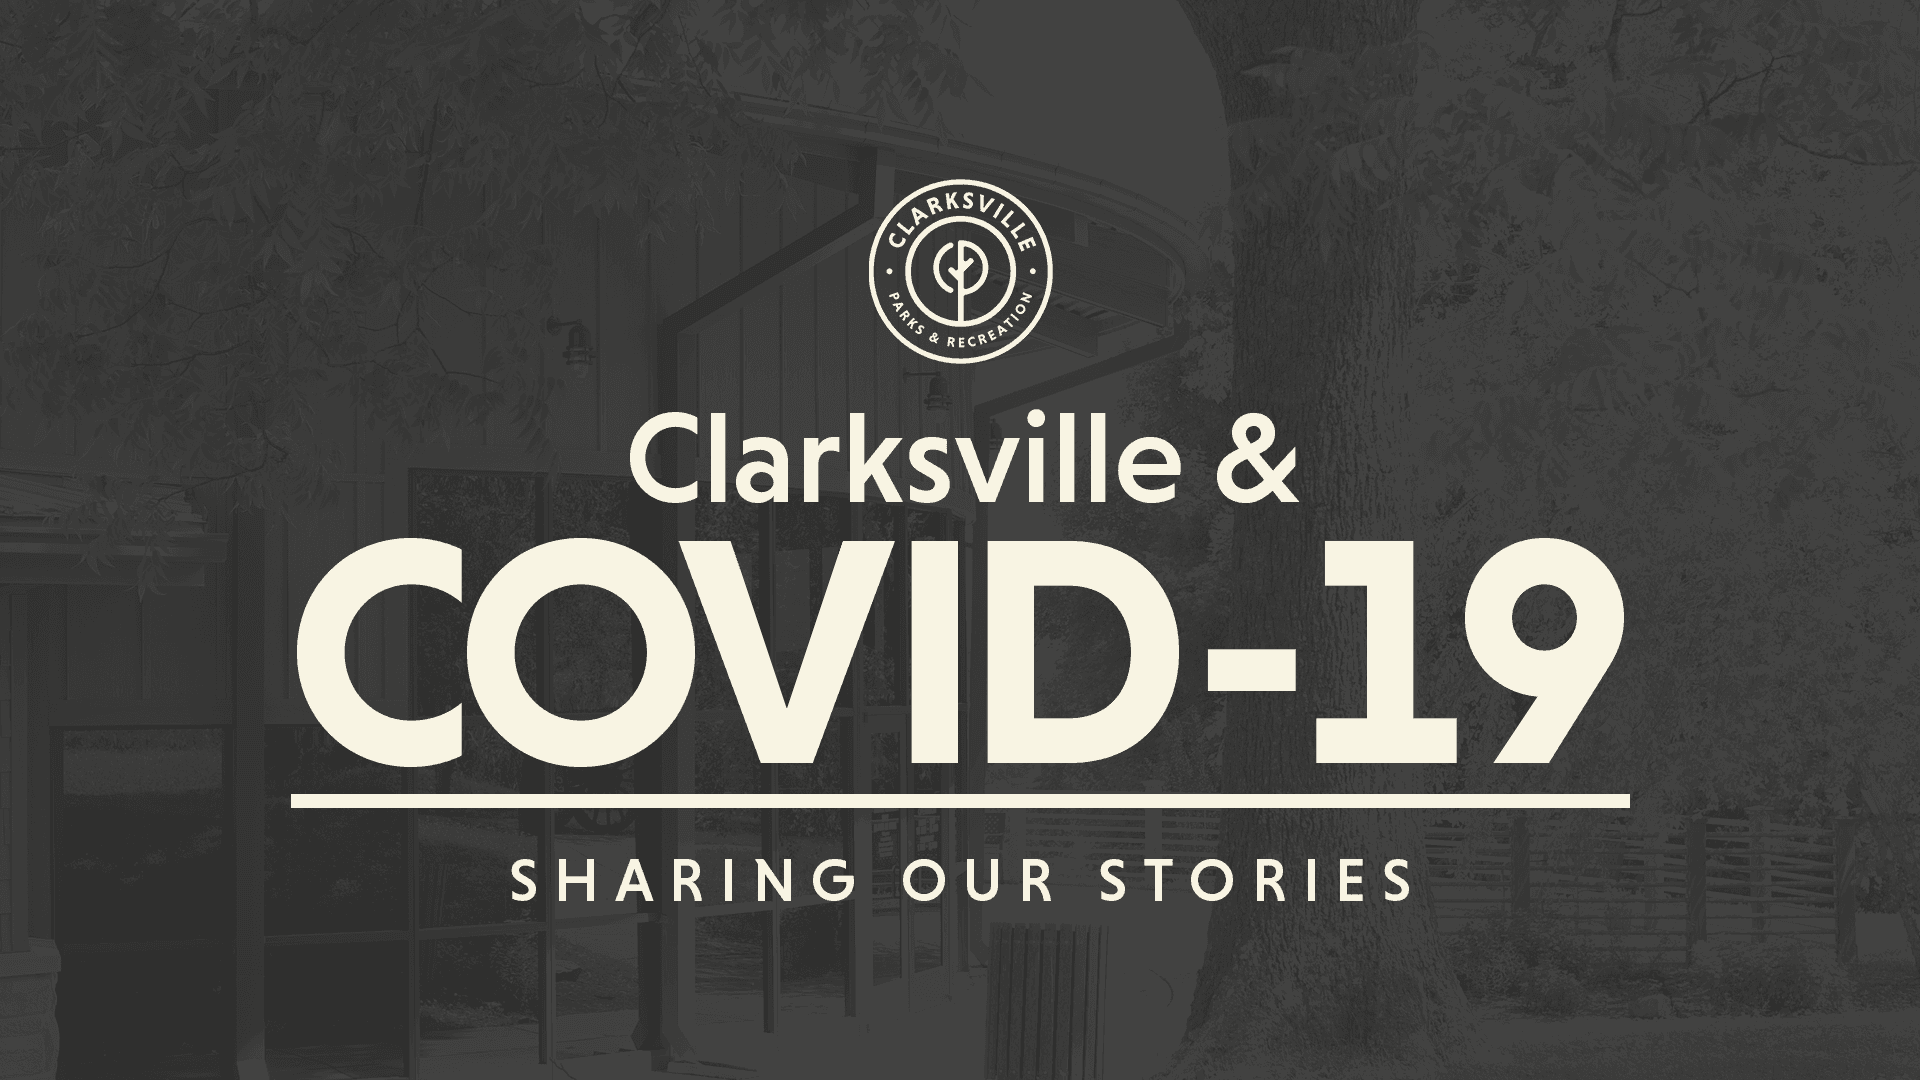 COVID19 Stories